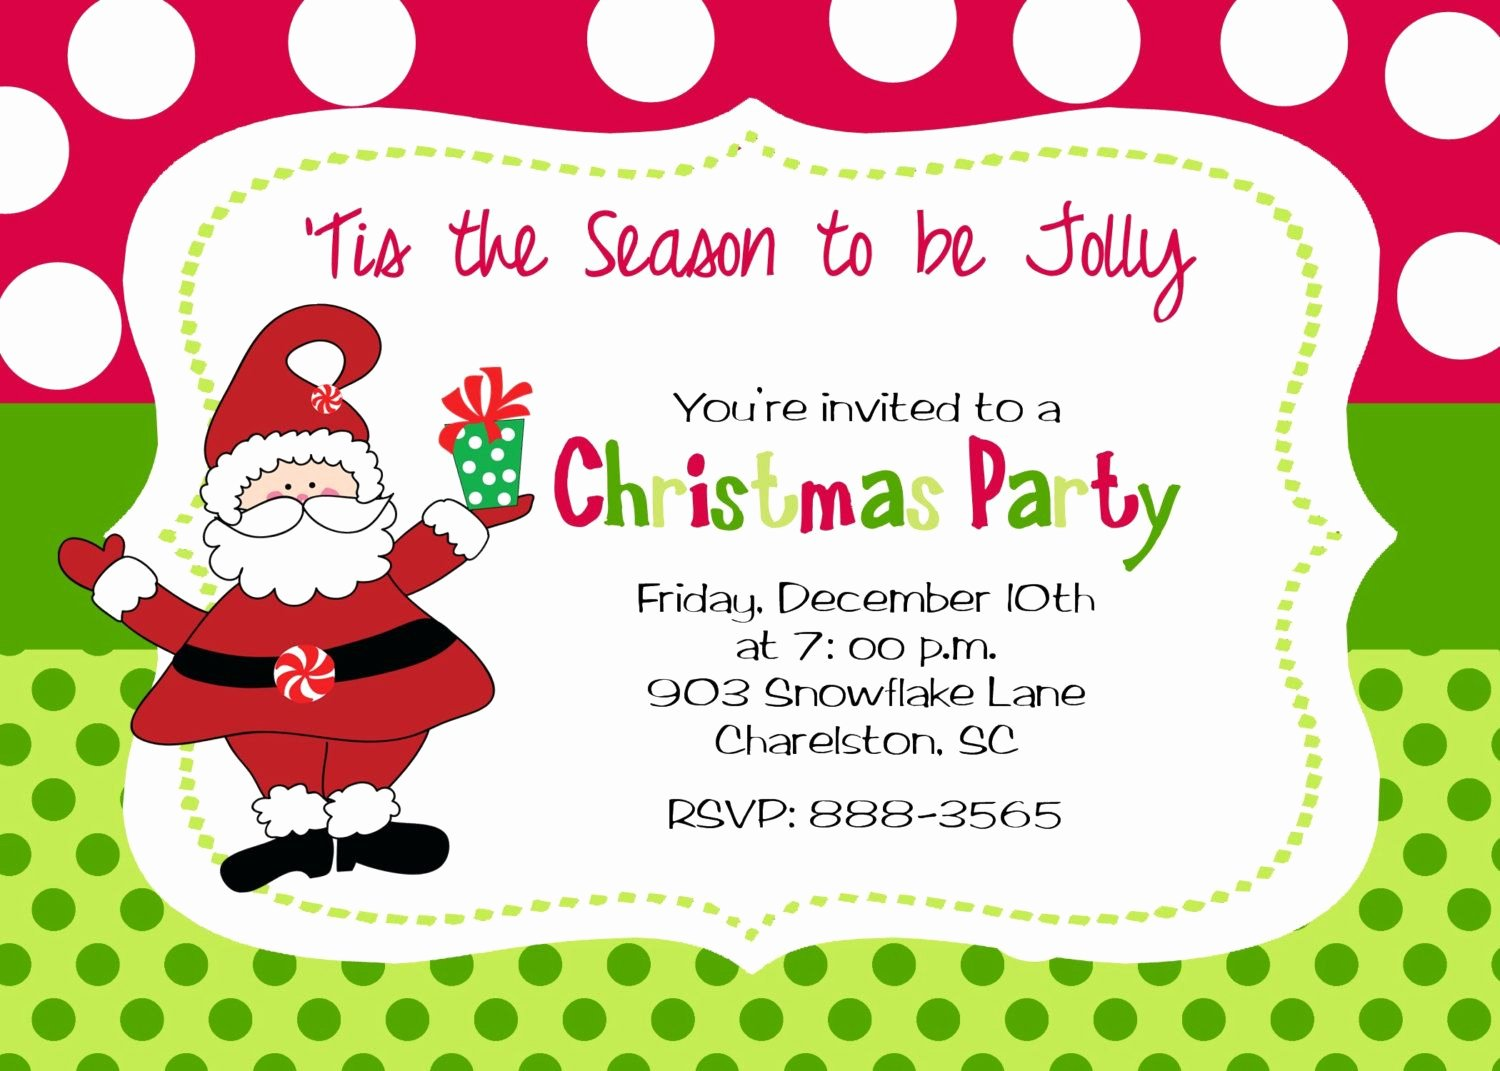 Free Holiday Party Templates Lovely Christmas Party Invitation by Stickerchic Etsy